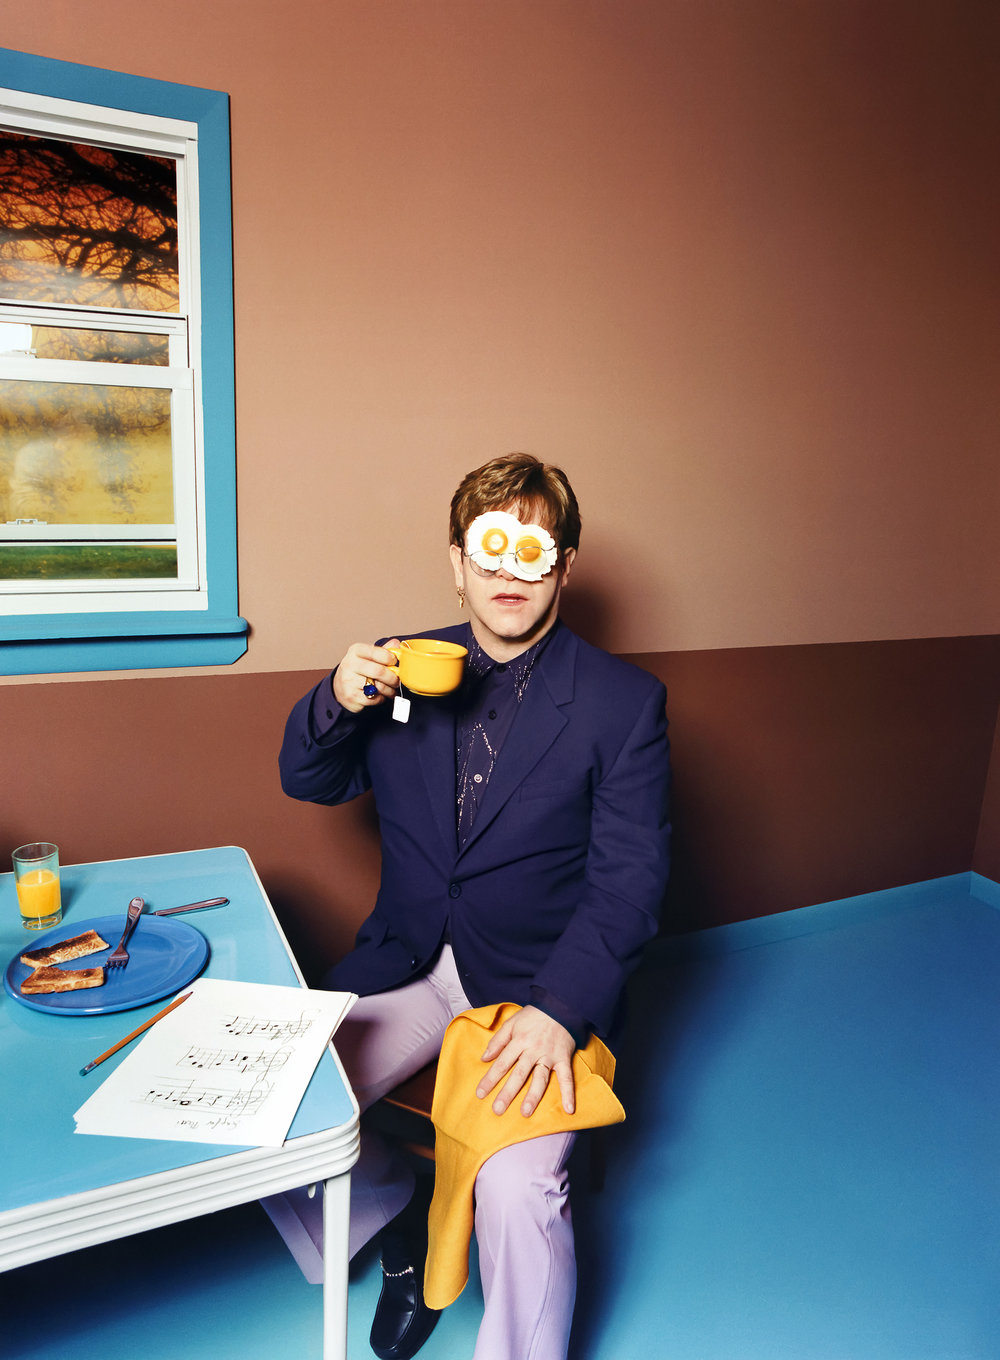 """Elton John: Egg On His Face, 1999"". David LaChapelle. © David LaChapelle / Courtesy Staley-Wise Gallery, New York"